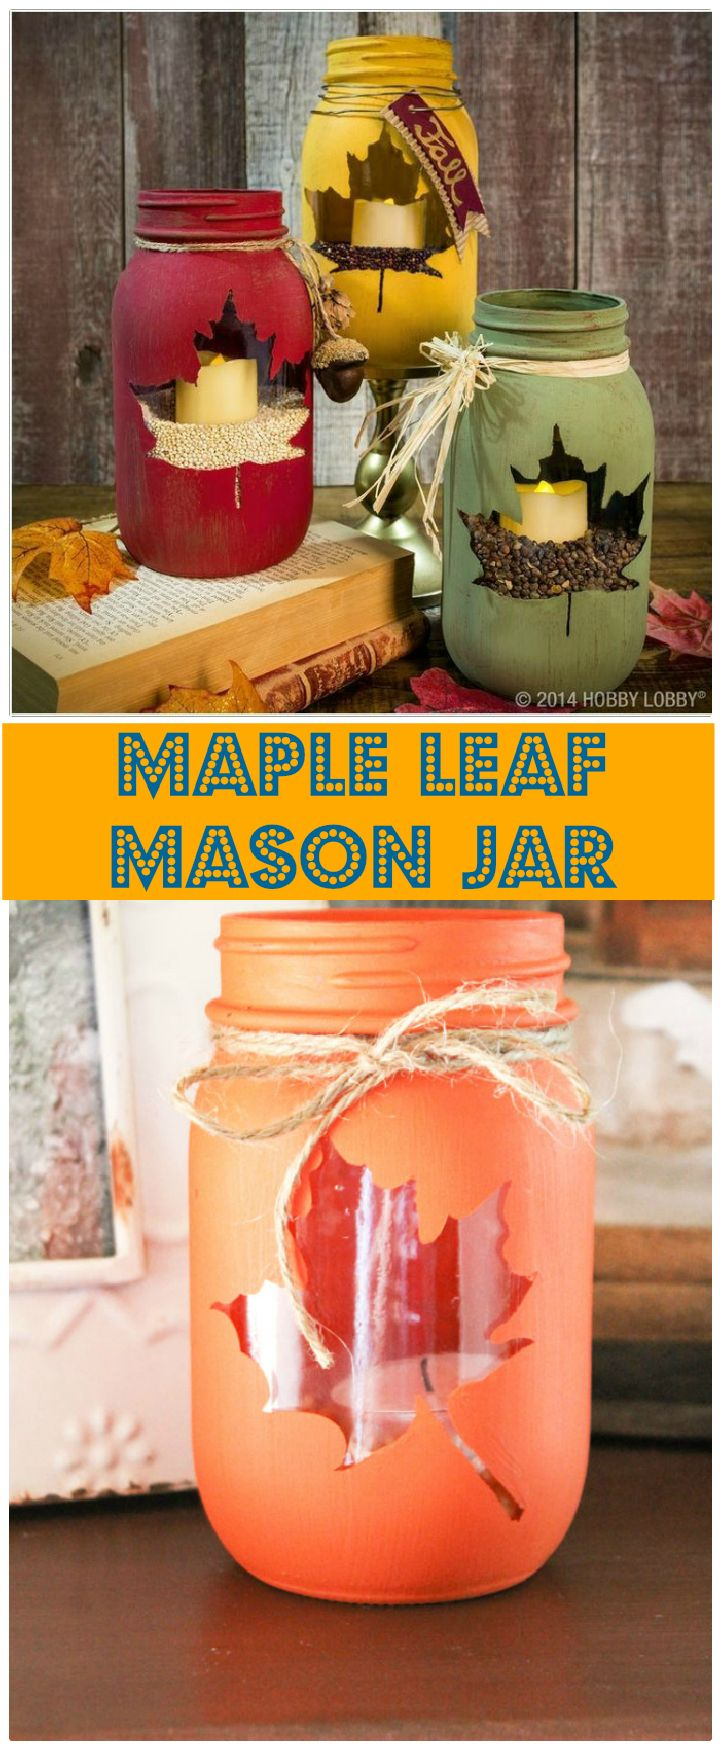 Maple Leaf Mason Jars 30 Interesting Mason jar craft ideas for fall décor